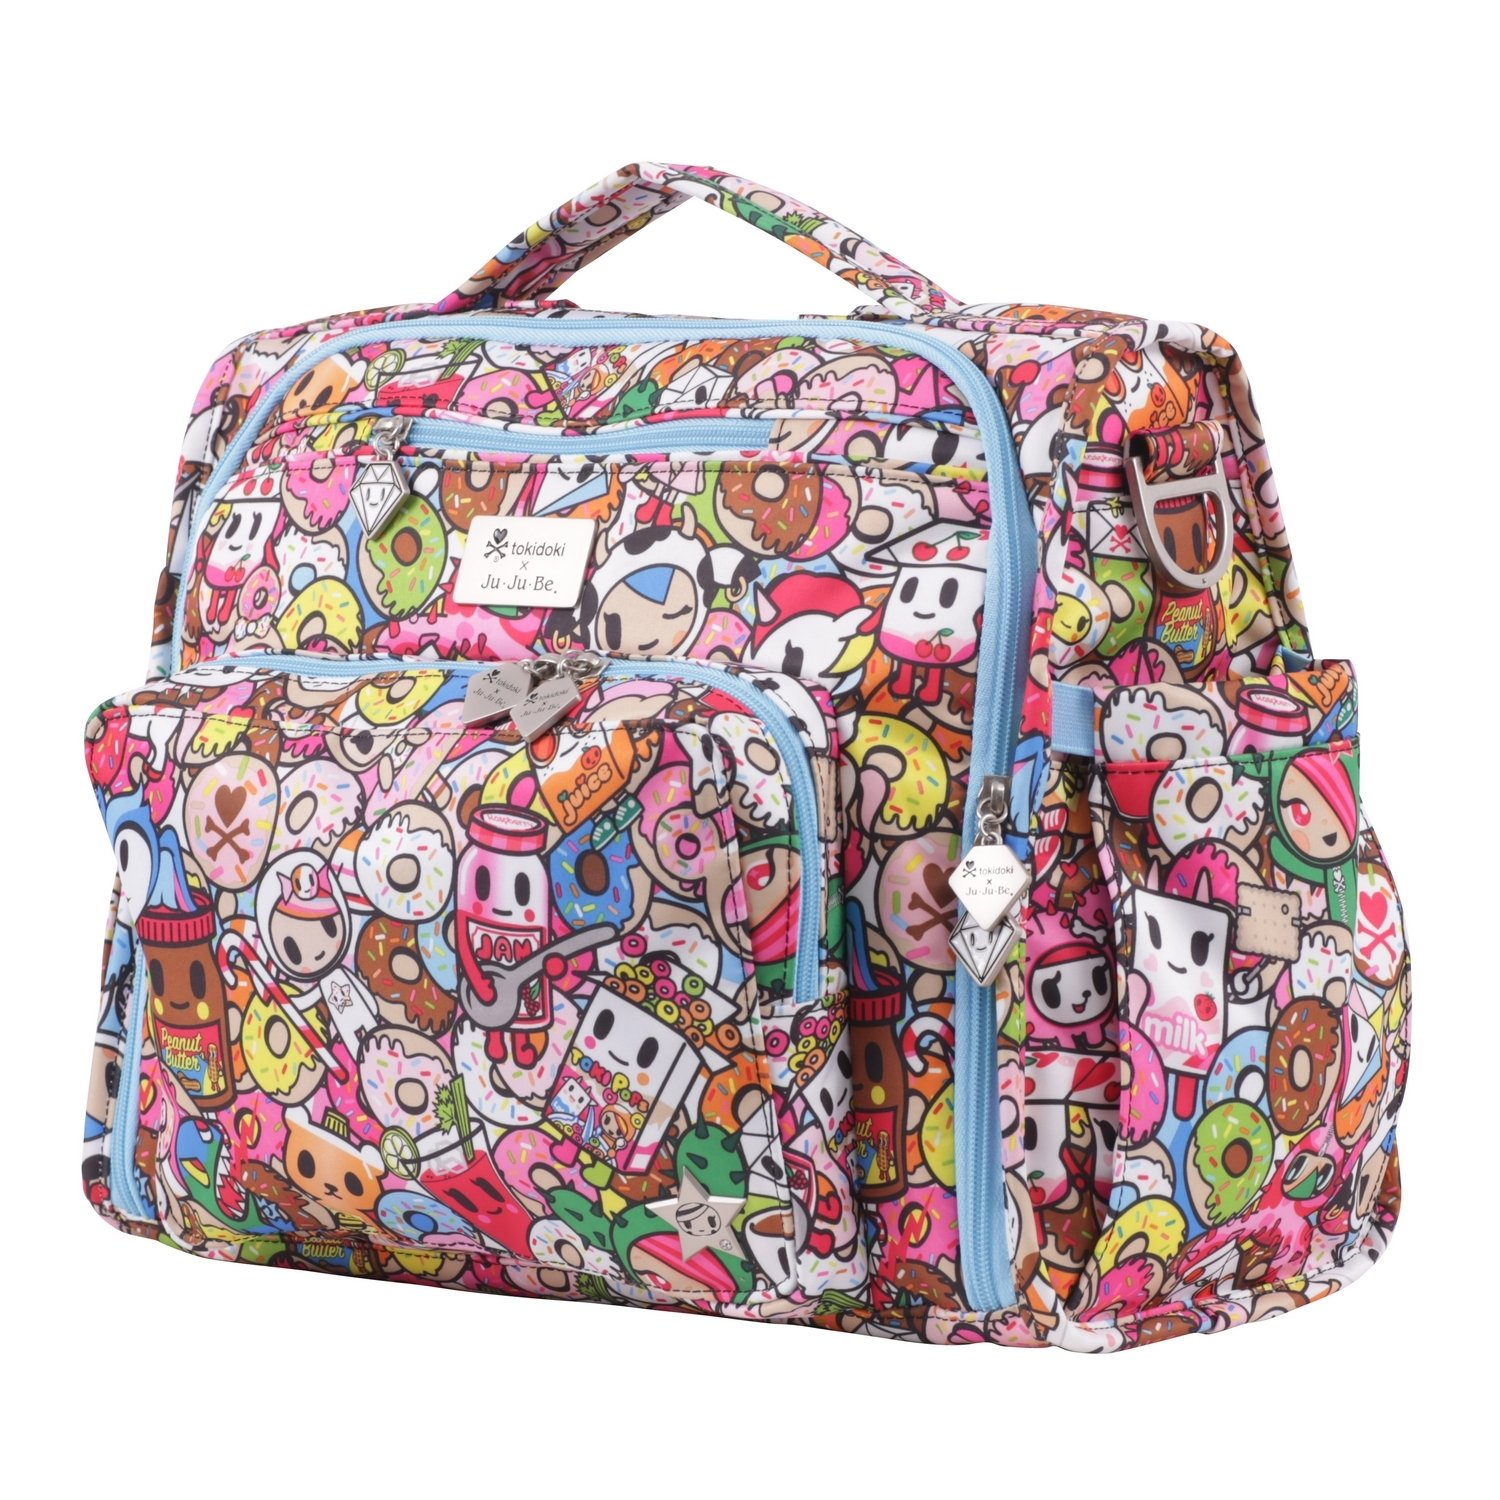 Amazon.com : JuJuBe B.F.F Multi-Functional Convertible Diaper Backpack/Messenger Bag, Tokidoki Collection - Tokipops : Baby